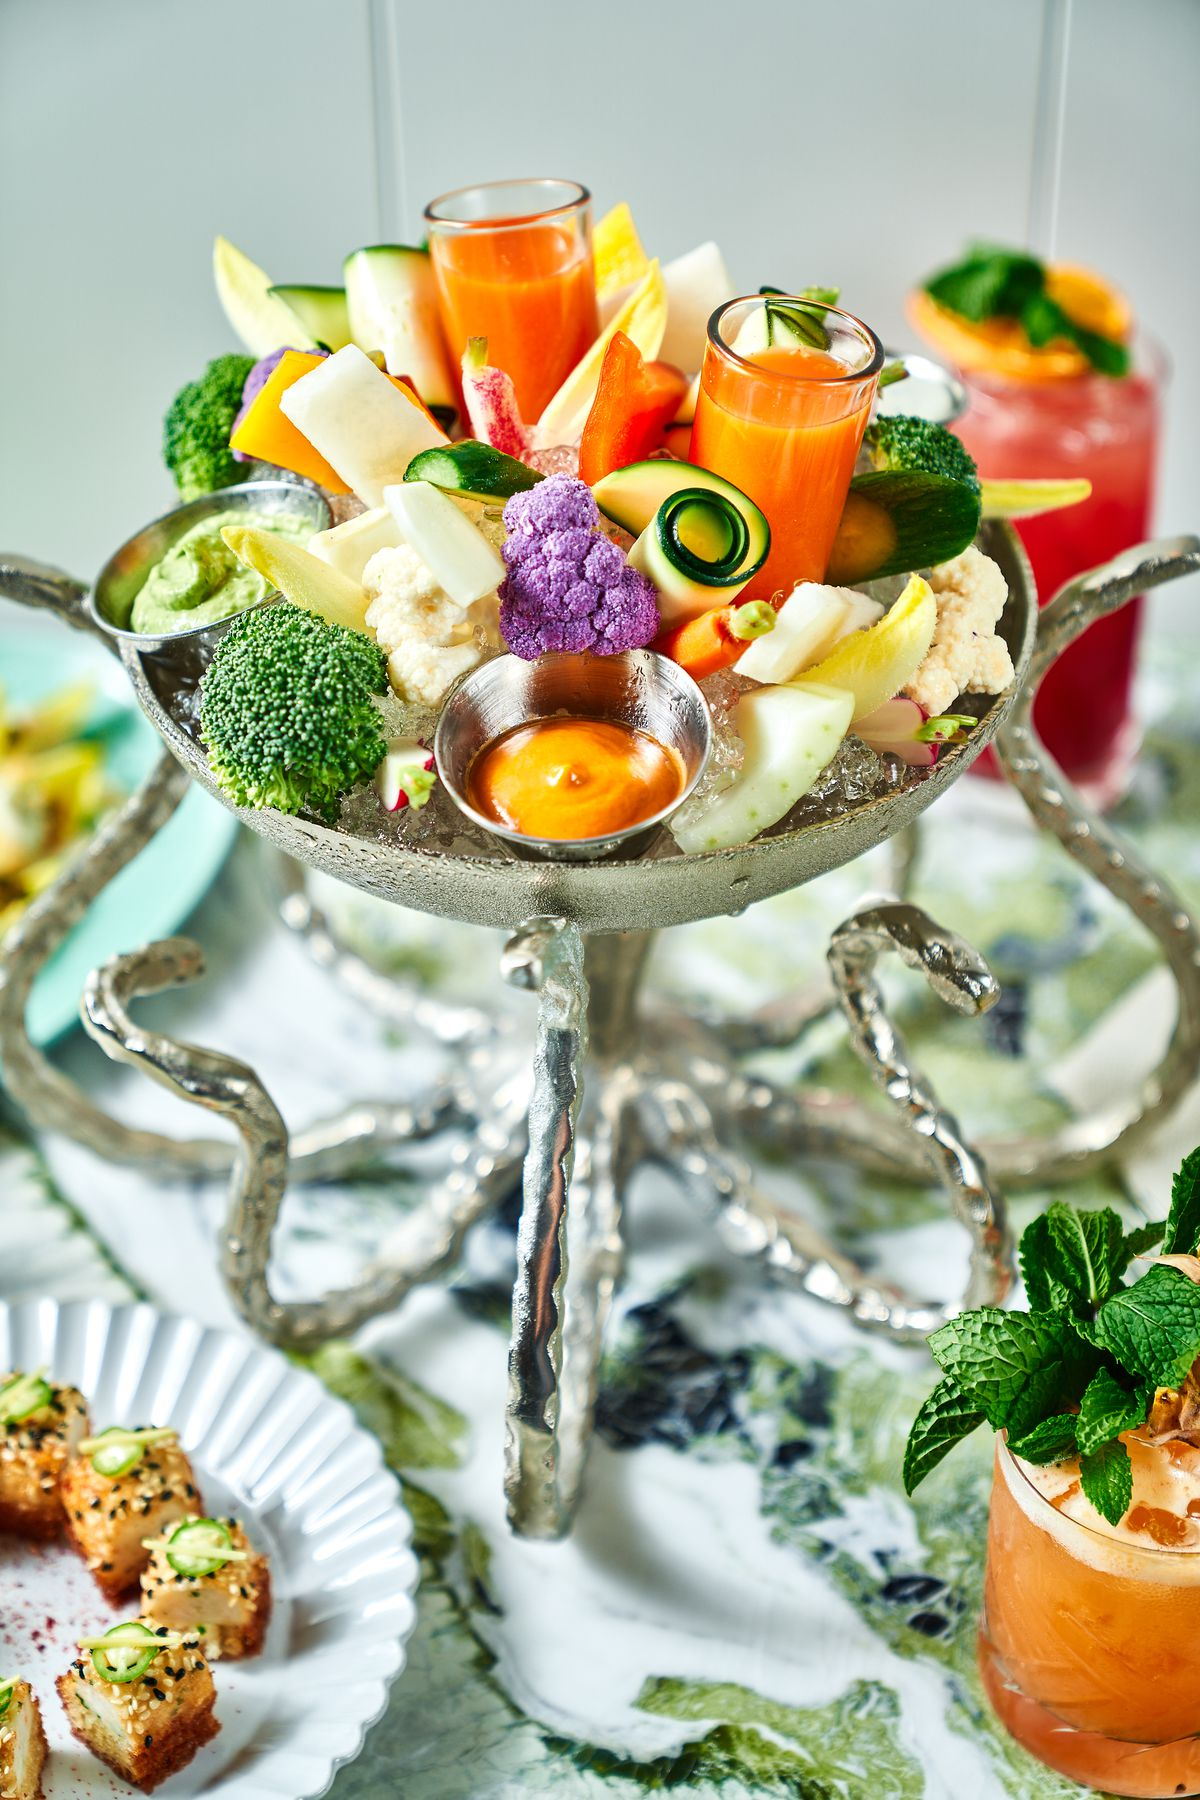 An ornate silver platter with a selection of vegetable crudite.